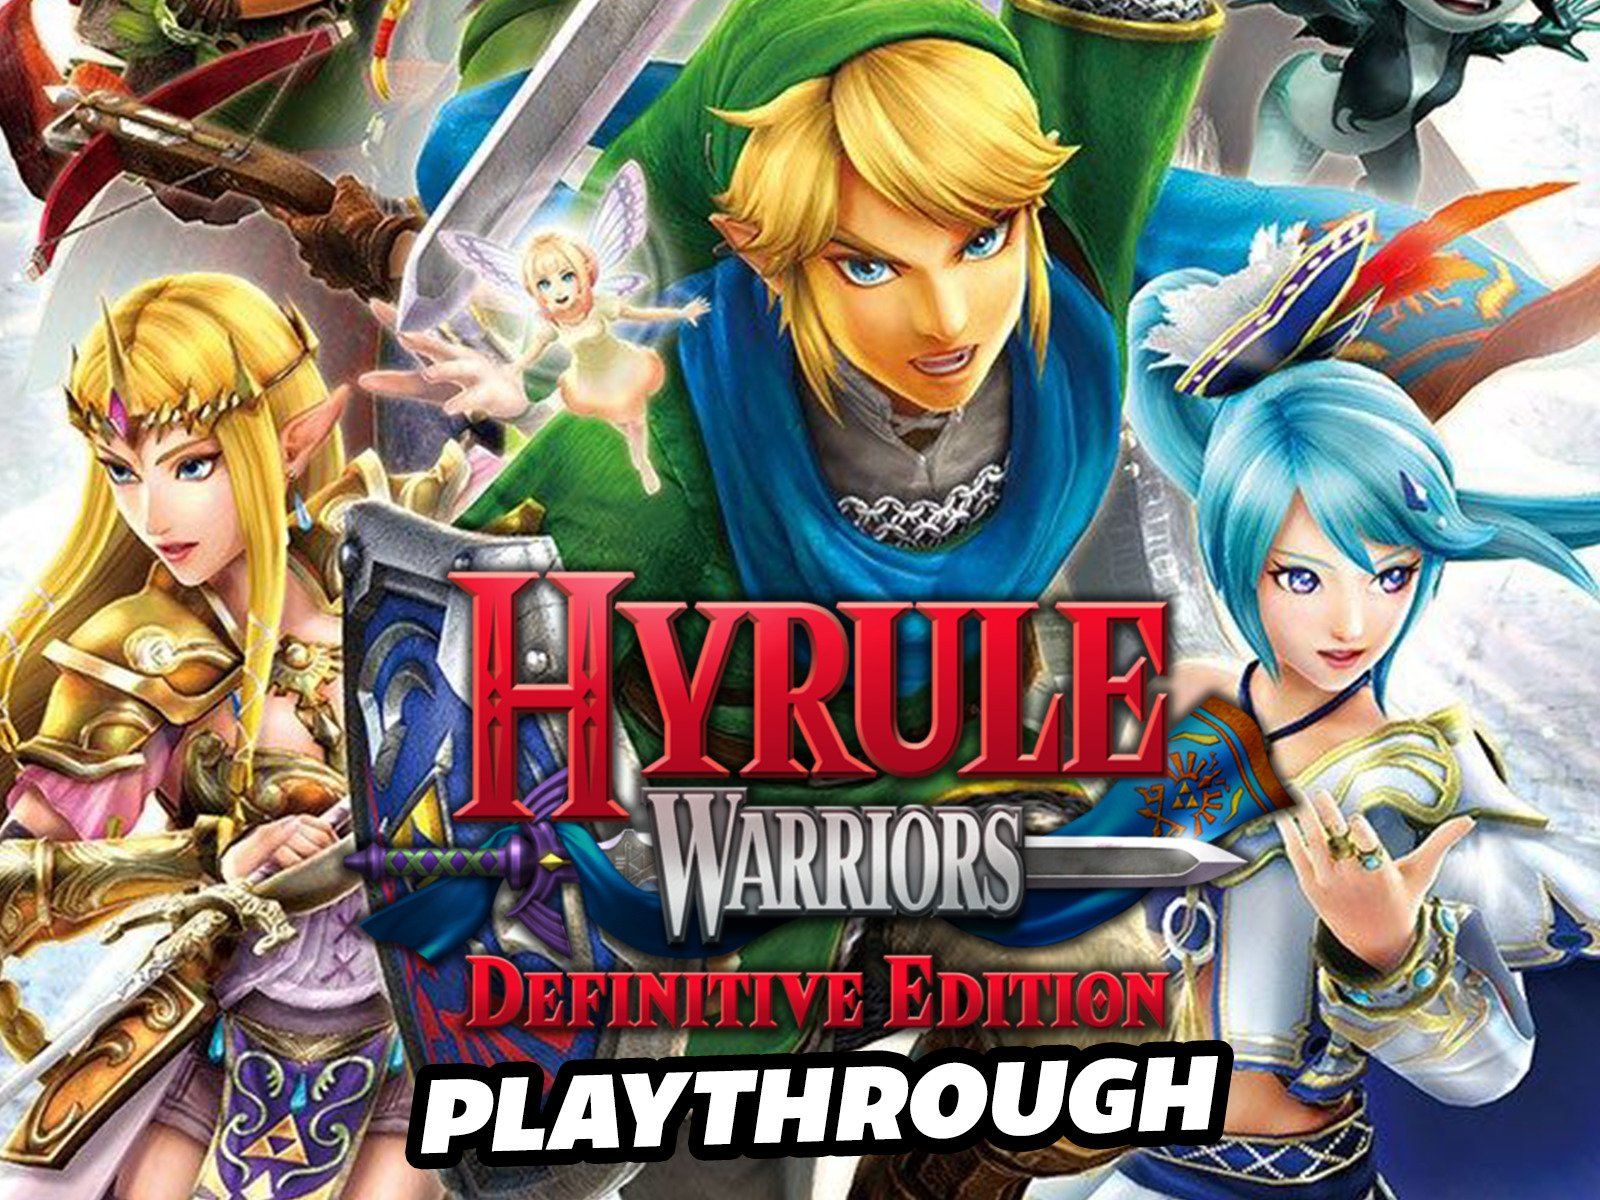 Clip: Hyrule Warriors Definitive Edition Playthrough - Season 1